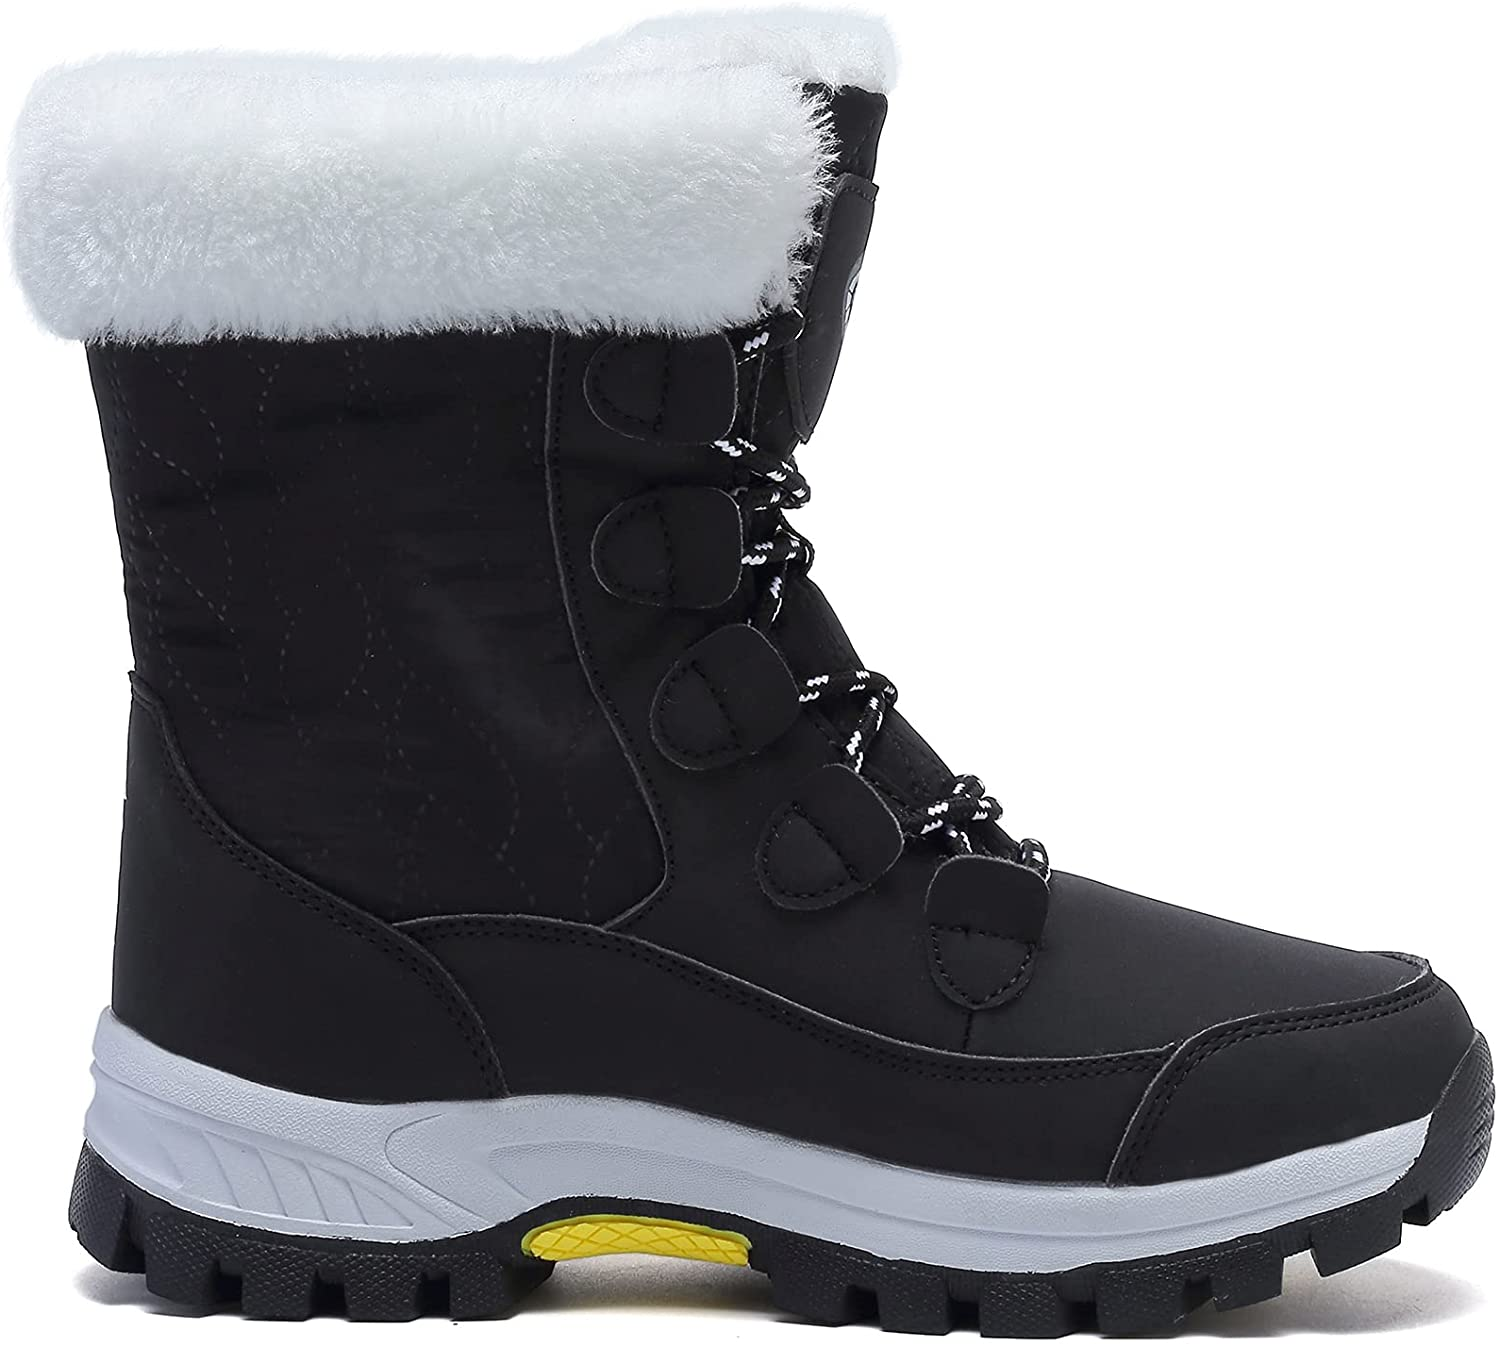 Womens Snow Boots Warm Fur Lined Winter Boots Anti Slip Ankle Boots Mid Calf Snowboots Waterproof and Cold-Resistant Outdoor Walking Shoes for Women Ladies Girls